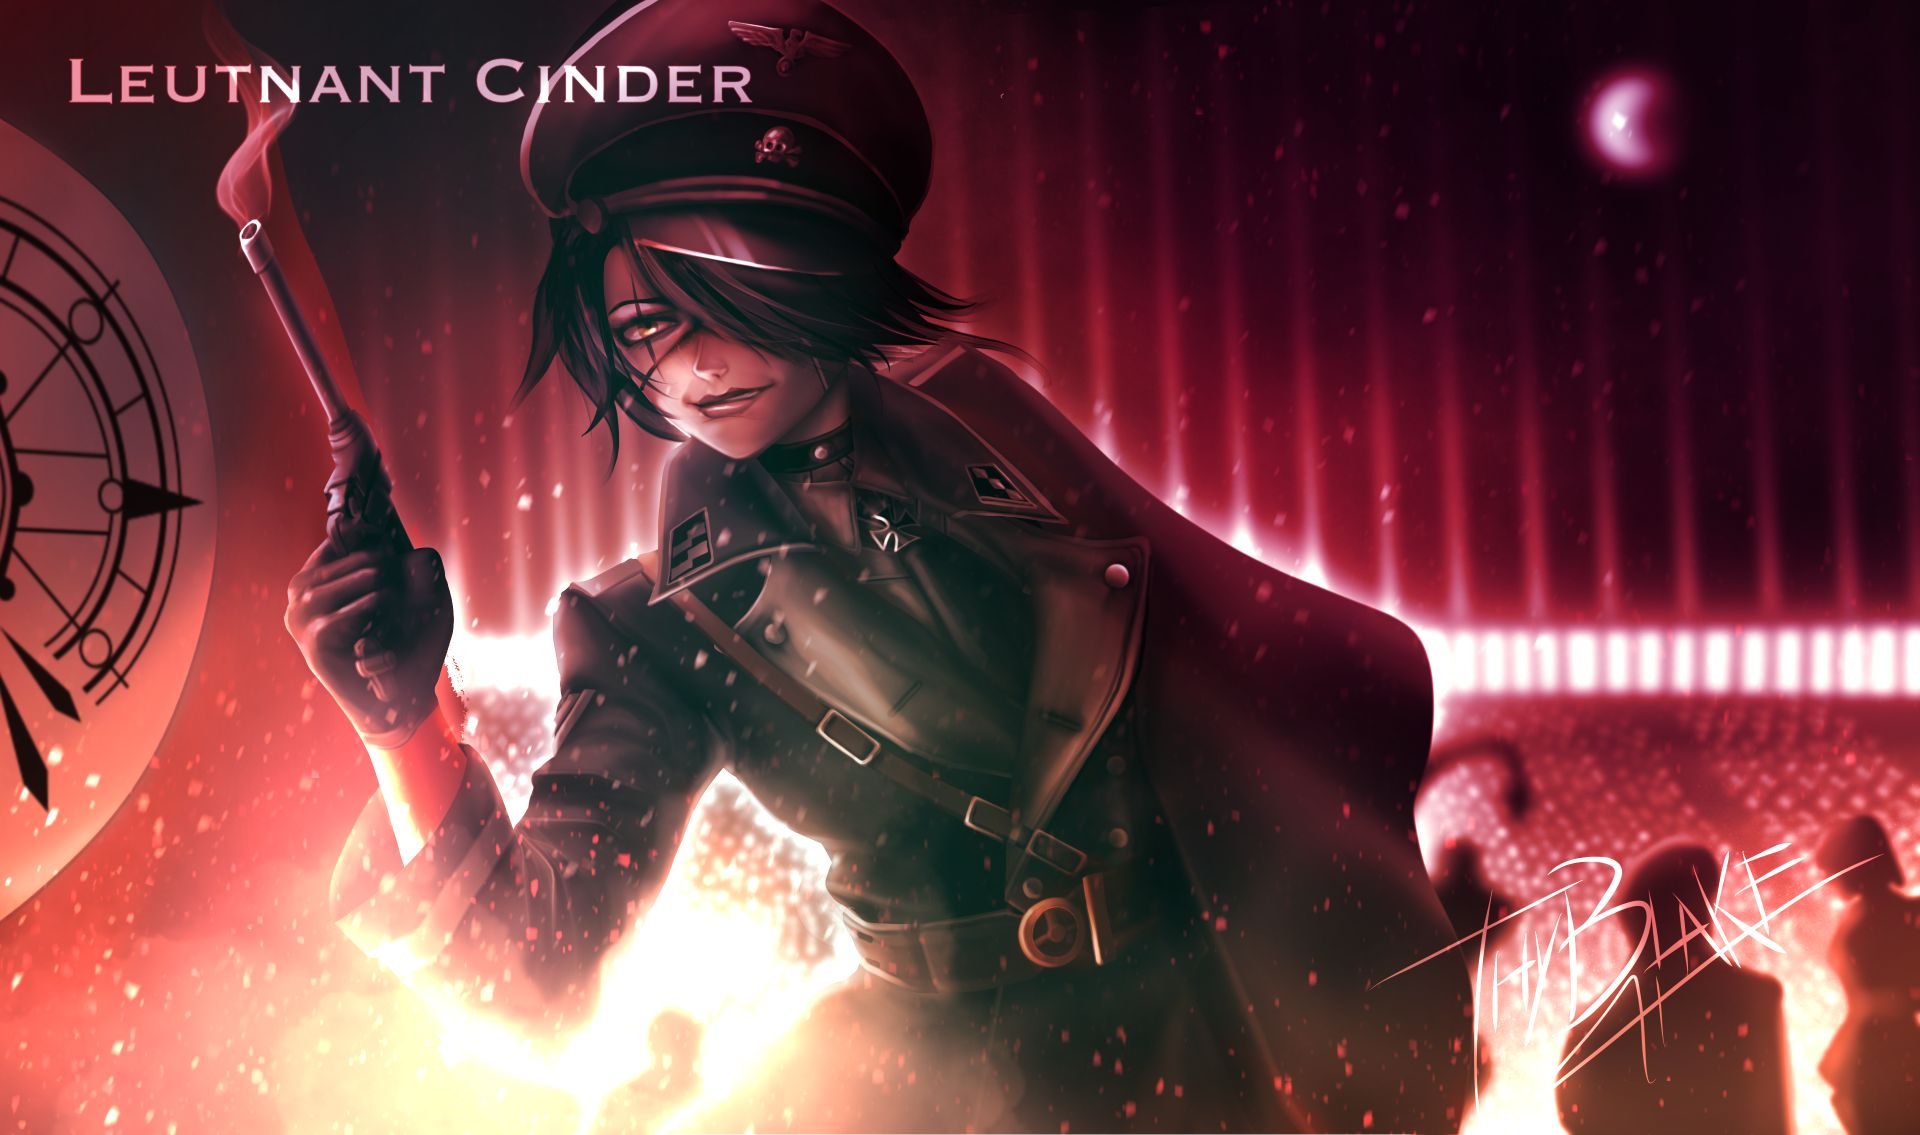 rwby__ww2_nations__germany____cinder_by_thyblake_dcd4mf1.jpg